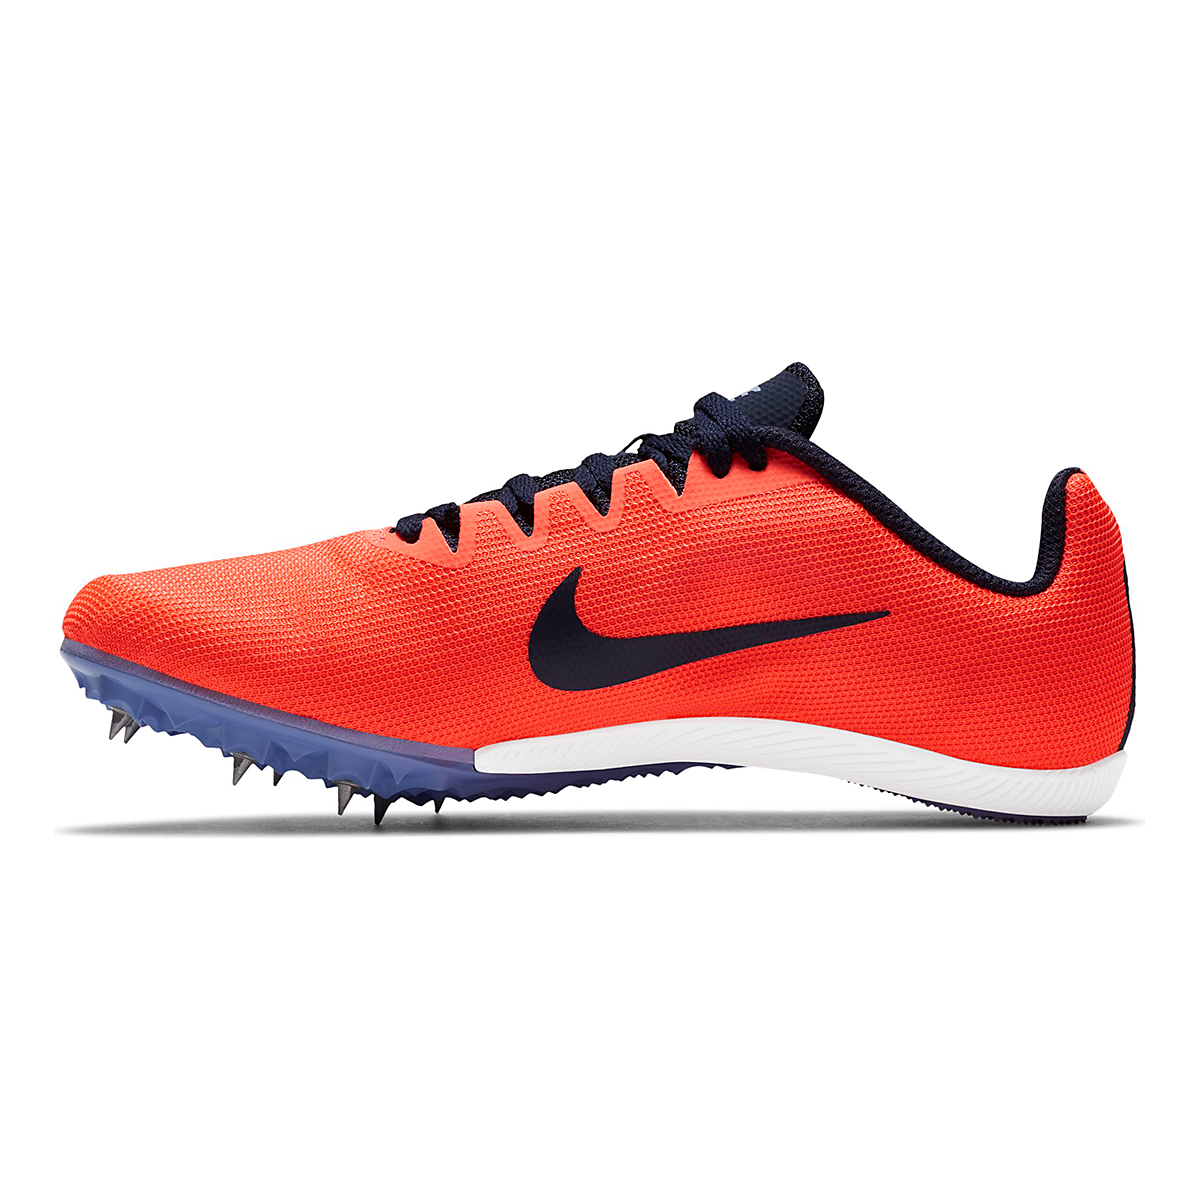 Women's Nike Zoom Rival M 9 Track Spikes - Color: Bright Mango/Blackend Blue - Size: 4 - Width: Regular, Bright Mango/Blackend Blue, large, image 2